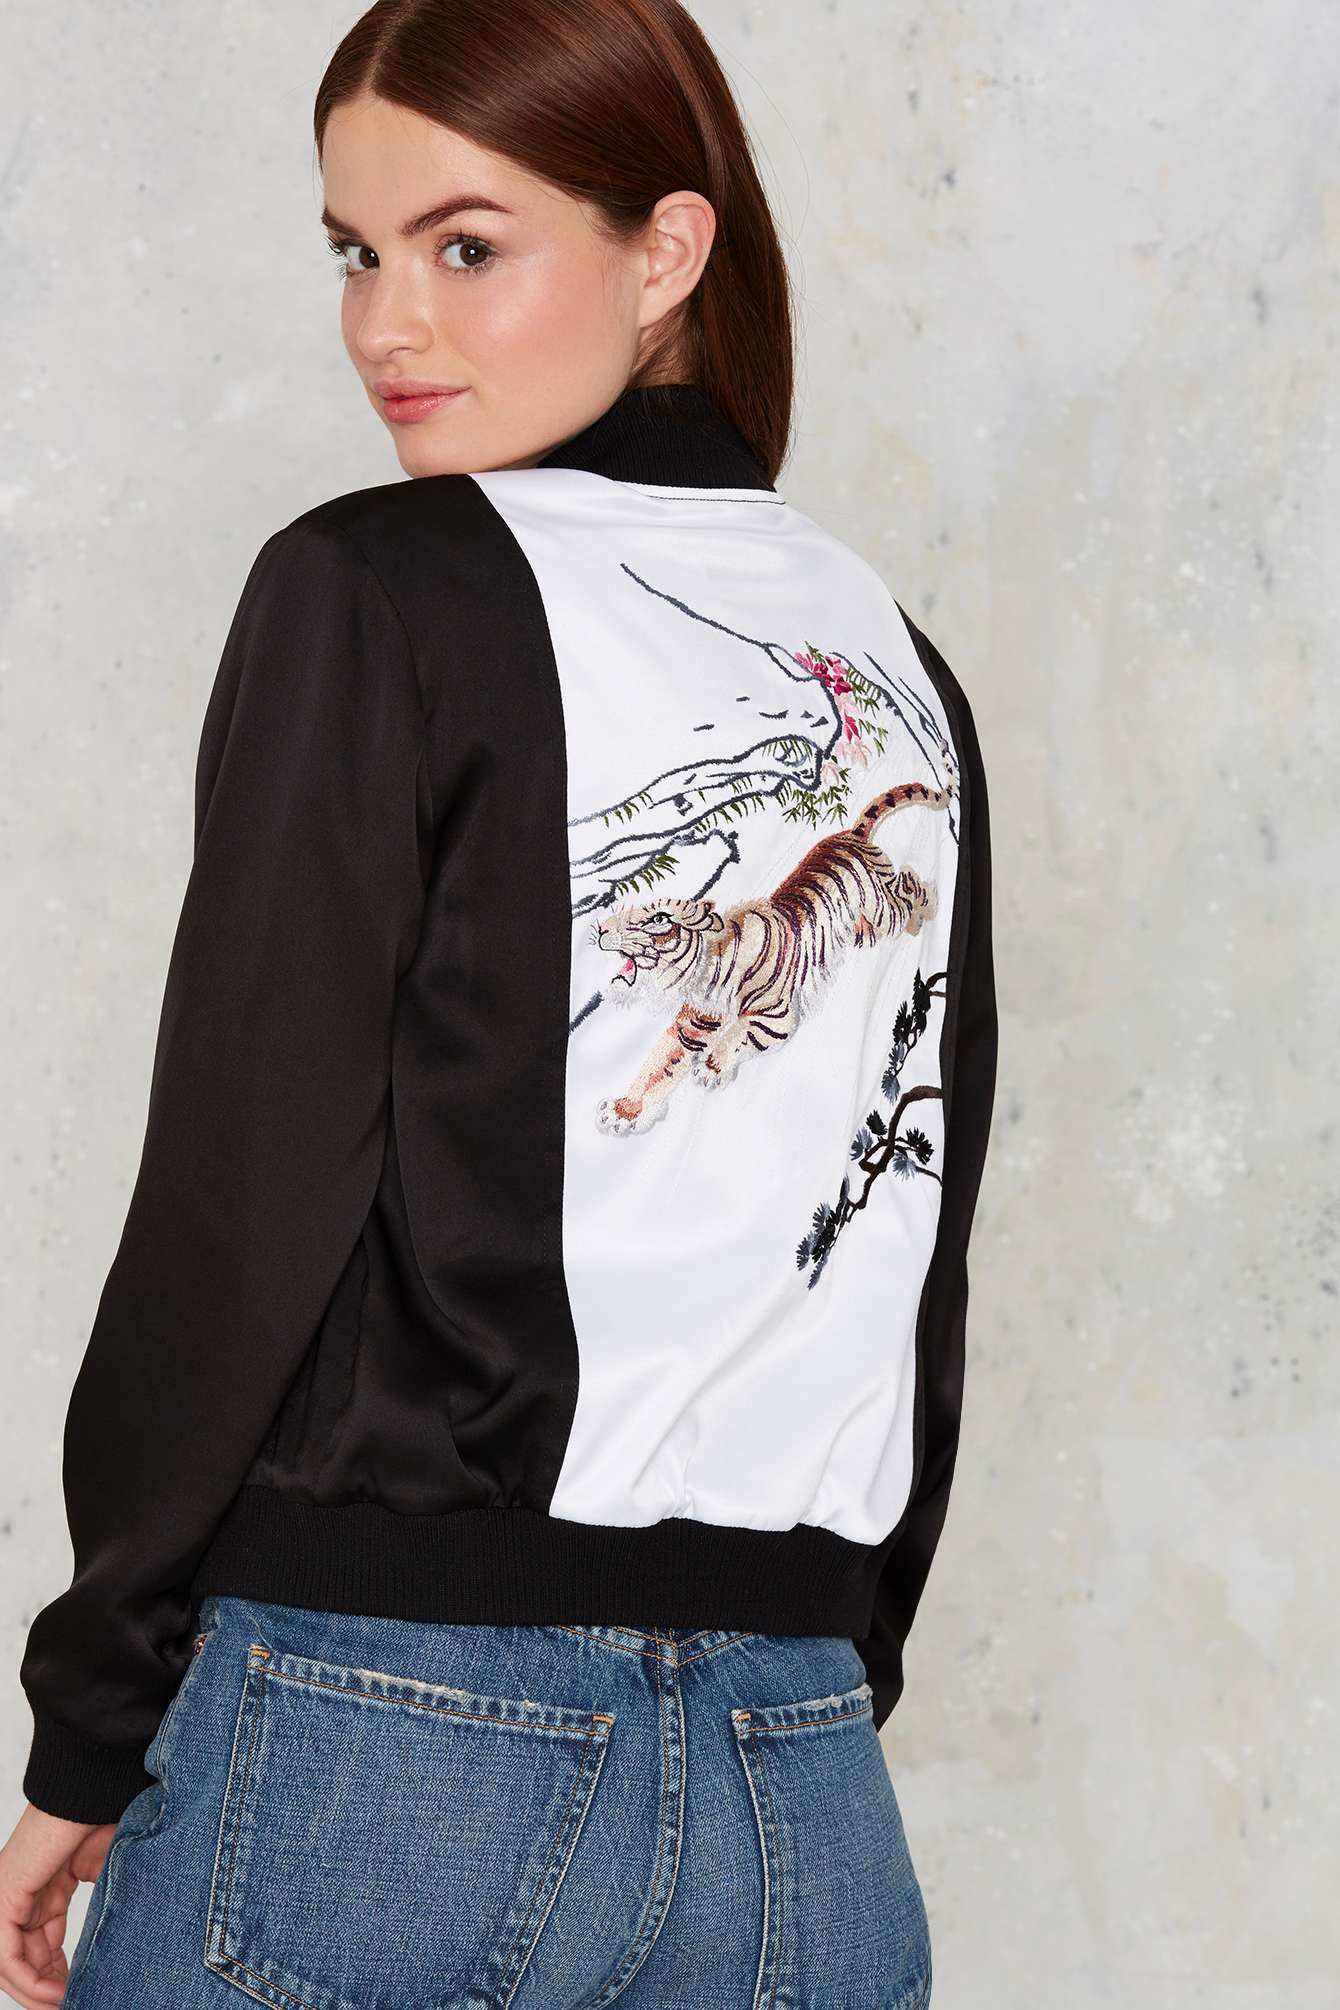 Bomber Jackets for Spring - Nasty Gal Wild In The Streets Bomber Jacket